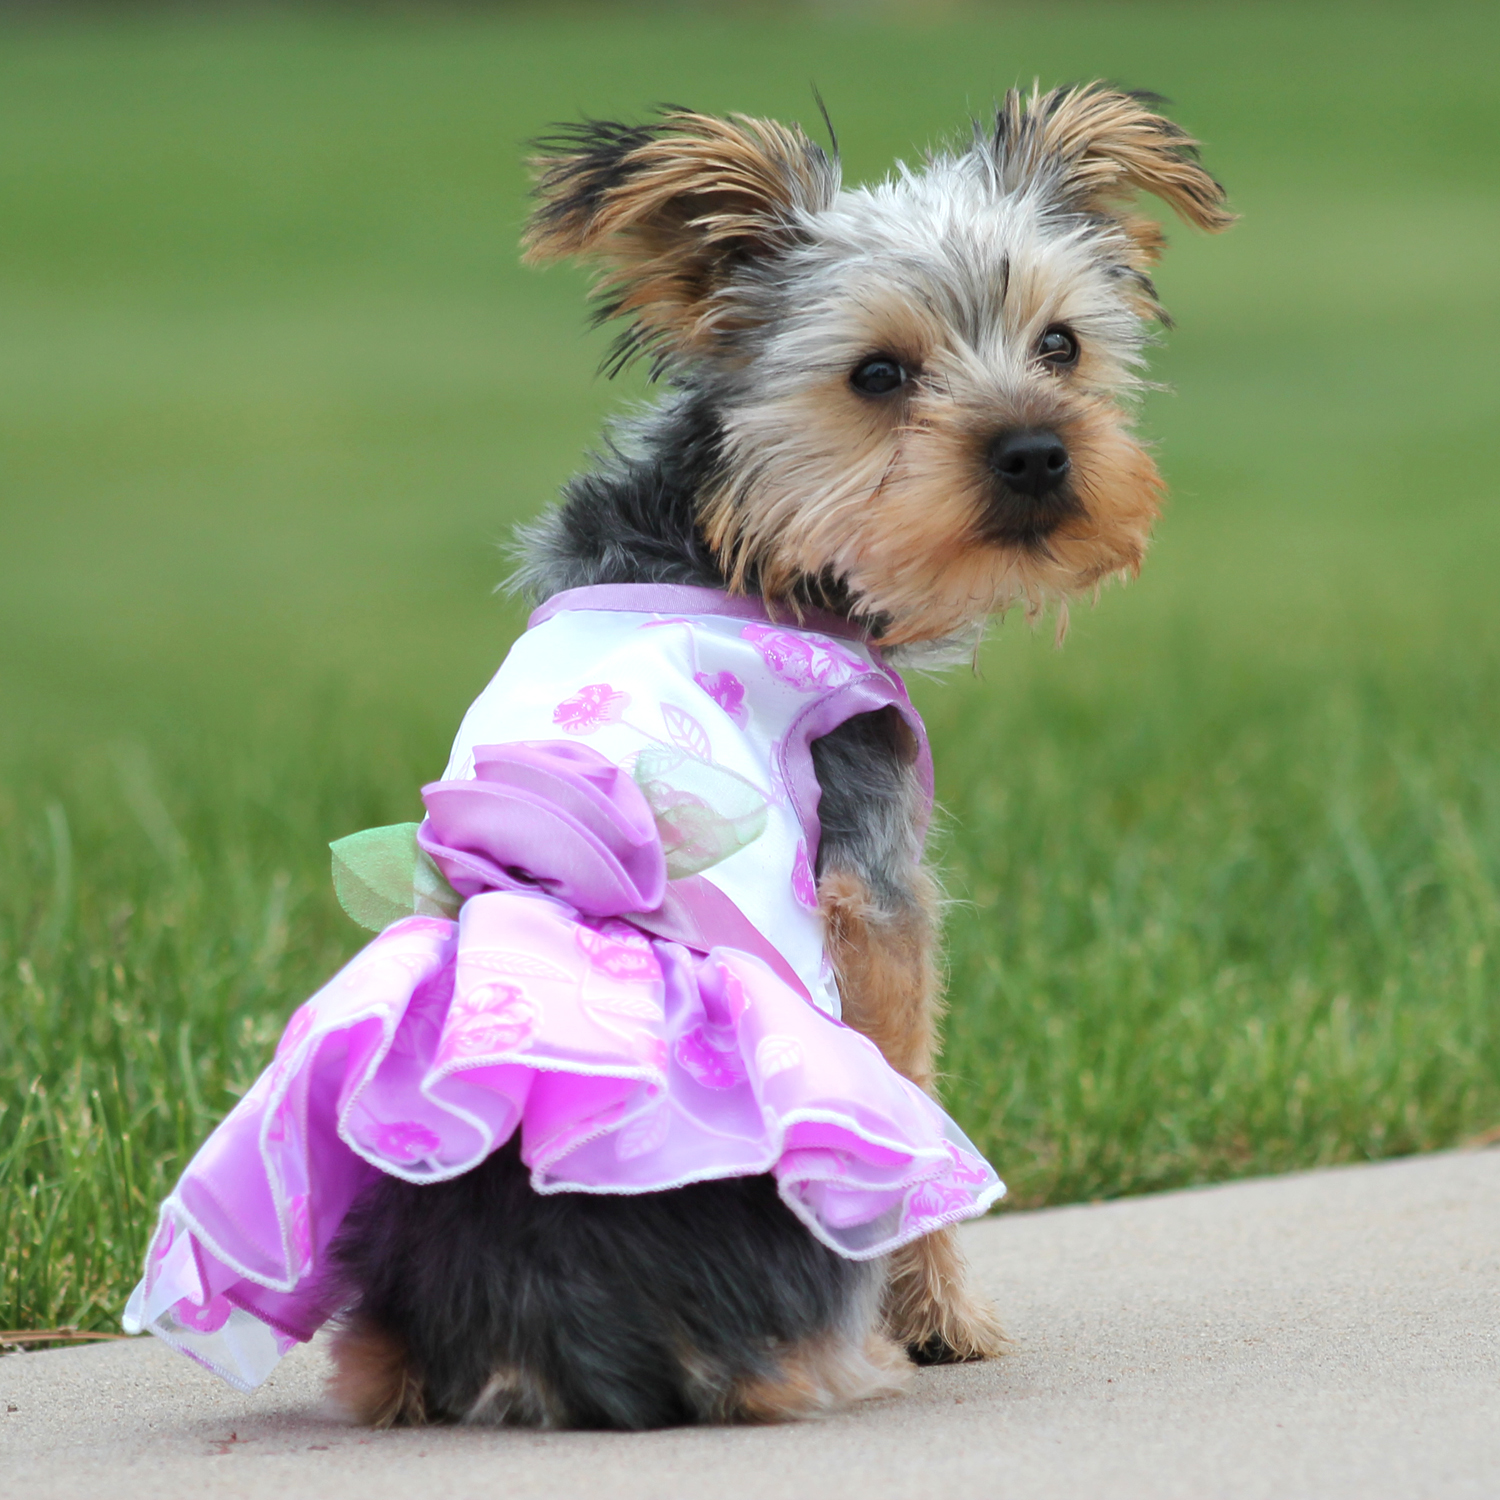 Elegance Rosette Dog Dress by East Side Collection - Purple